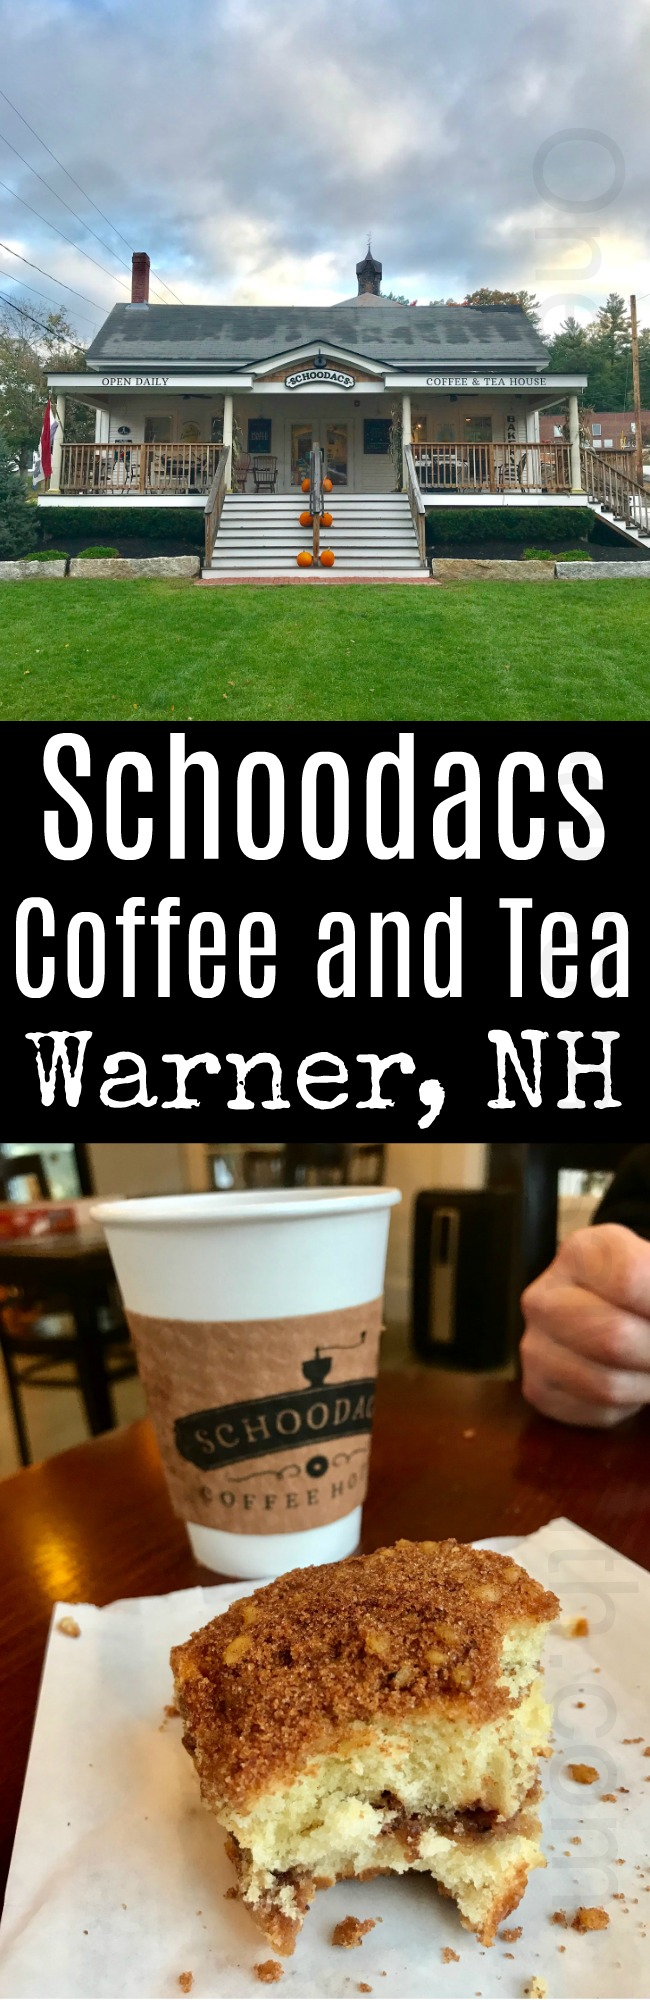 Schoodacs Coffee and Tea – Warner, New Hampshire